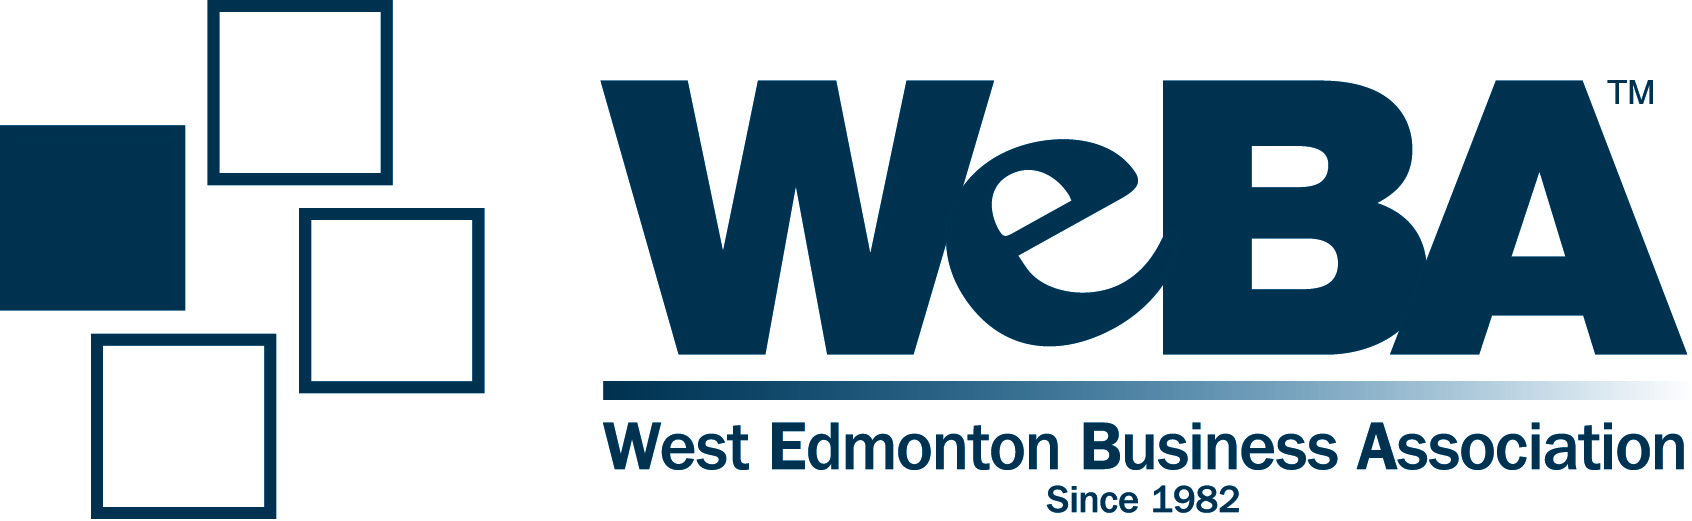 West Edmonton Business Association